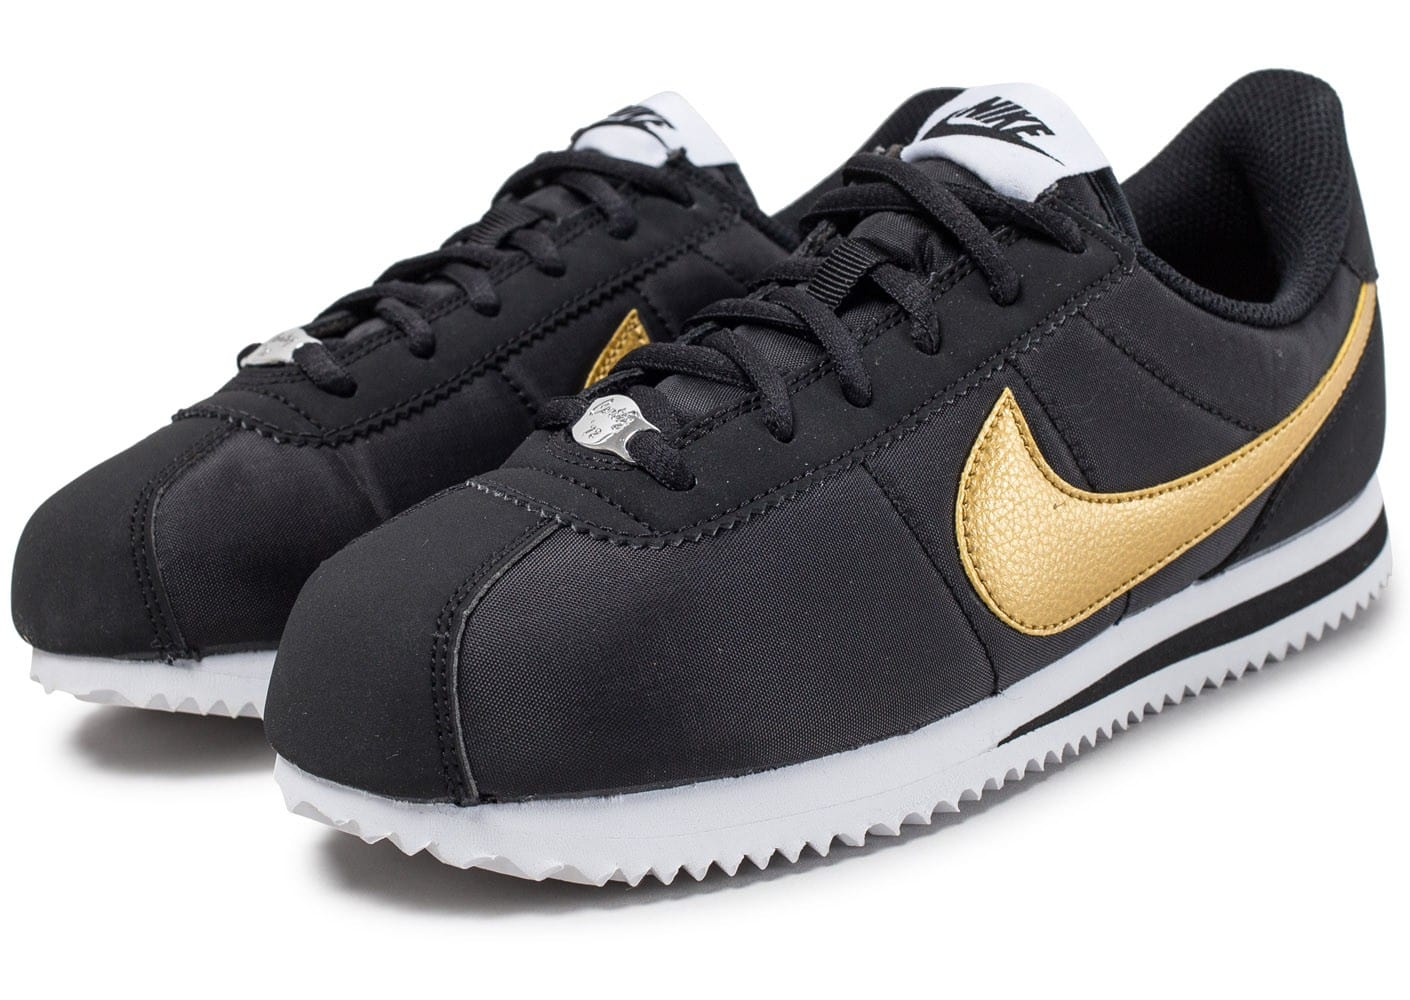 nike cortez basic junior noire et or chaussures black friday chausport. Black Bedroom Furniture Sets. Home Design Ideas